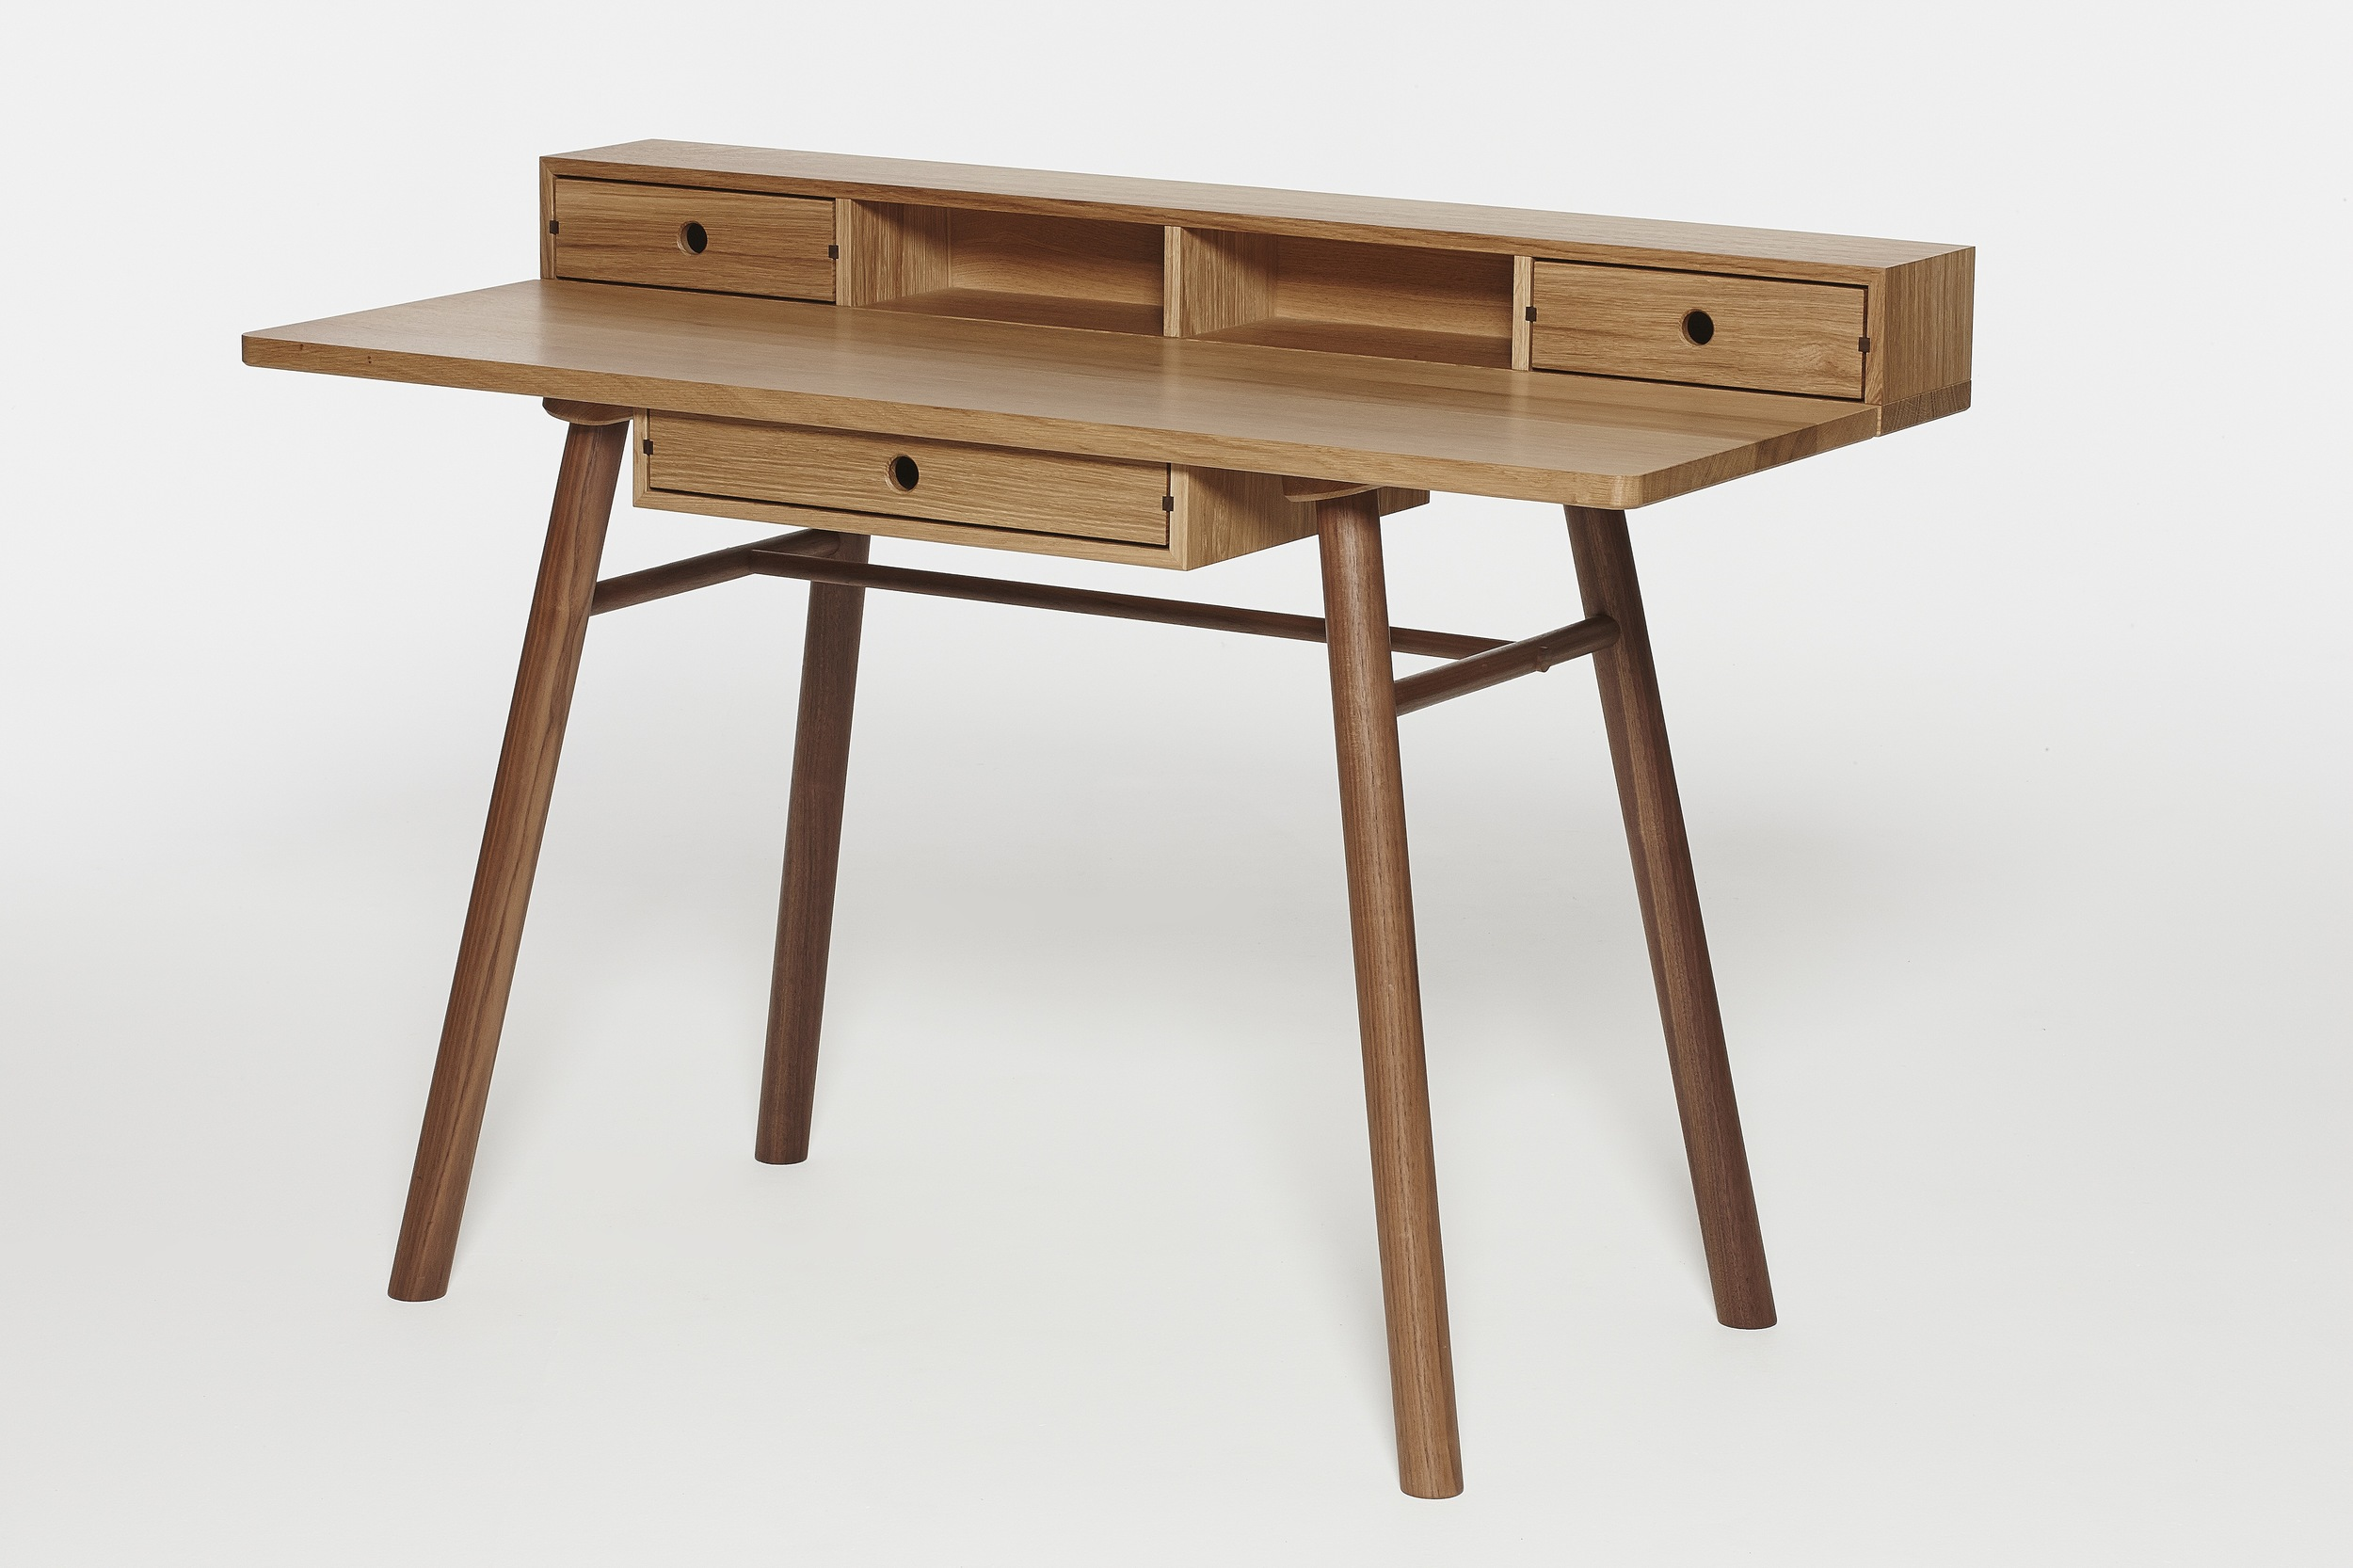 Award for furniture design by maker Namon Gaston